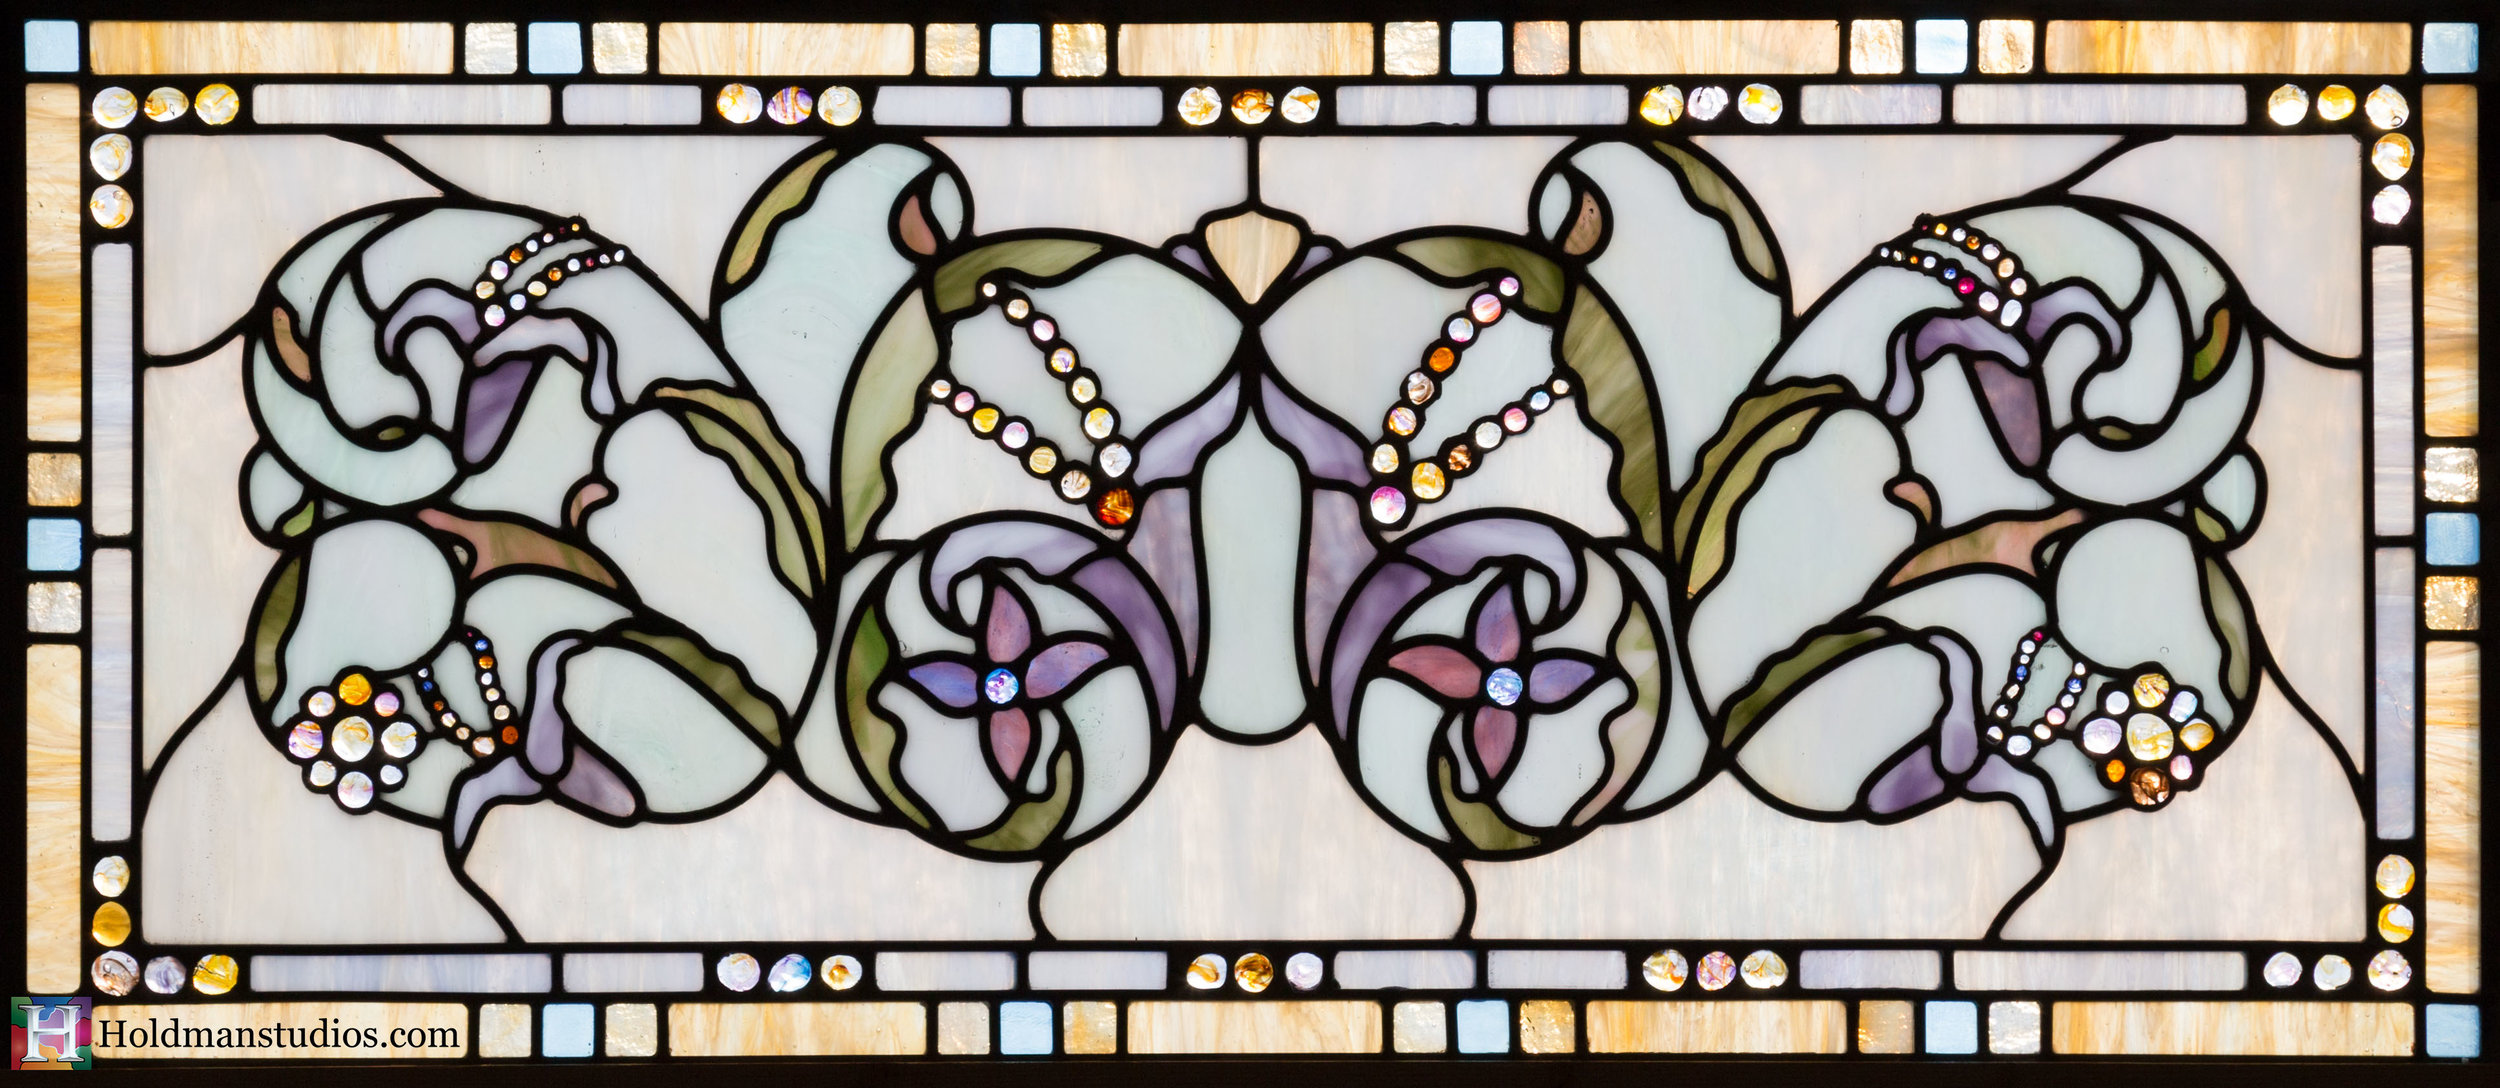 Holdman-Studios-Stained-Glass-Window-Flowers-Floral-Pattern-Handmade-Jewels-Square-Rectangles.jpg